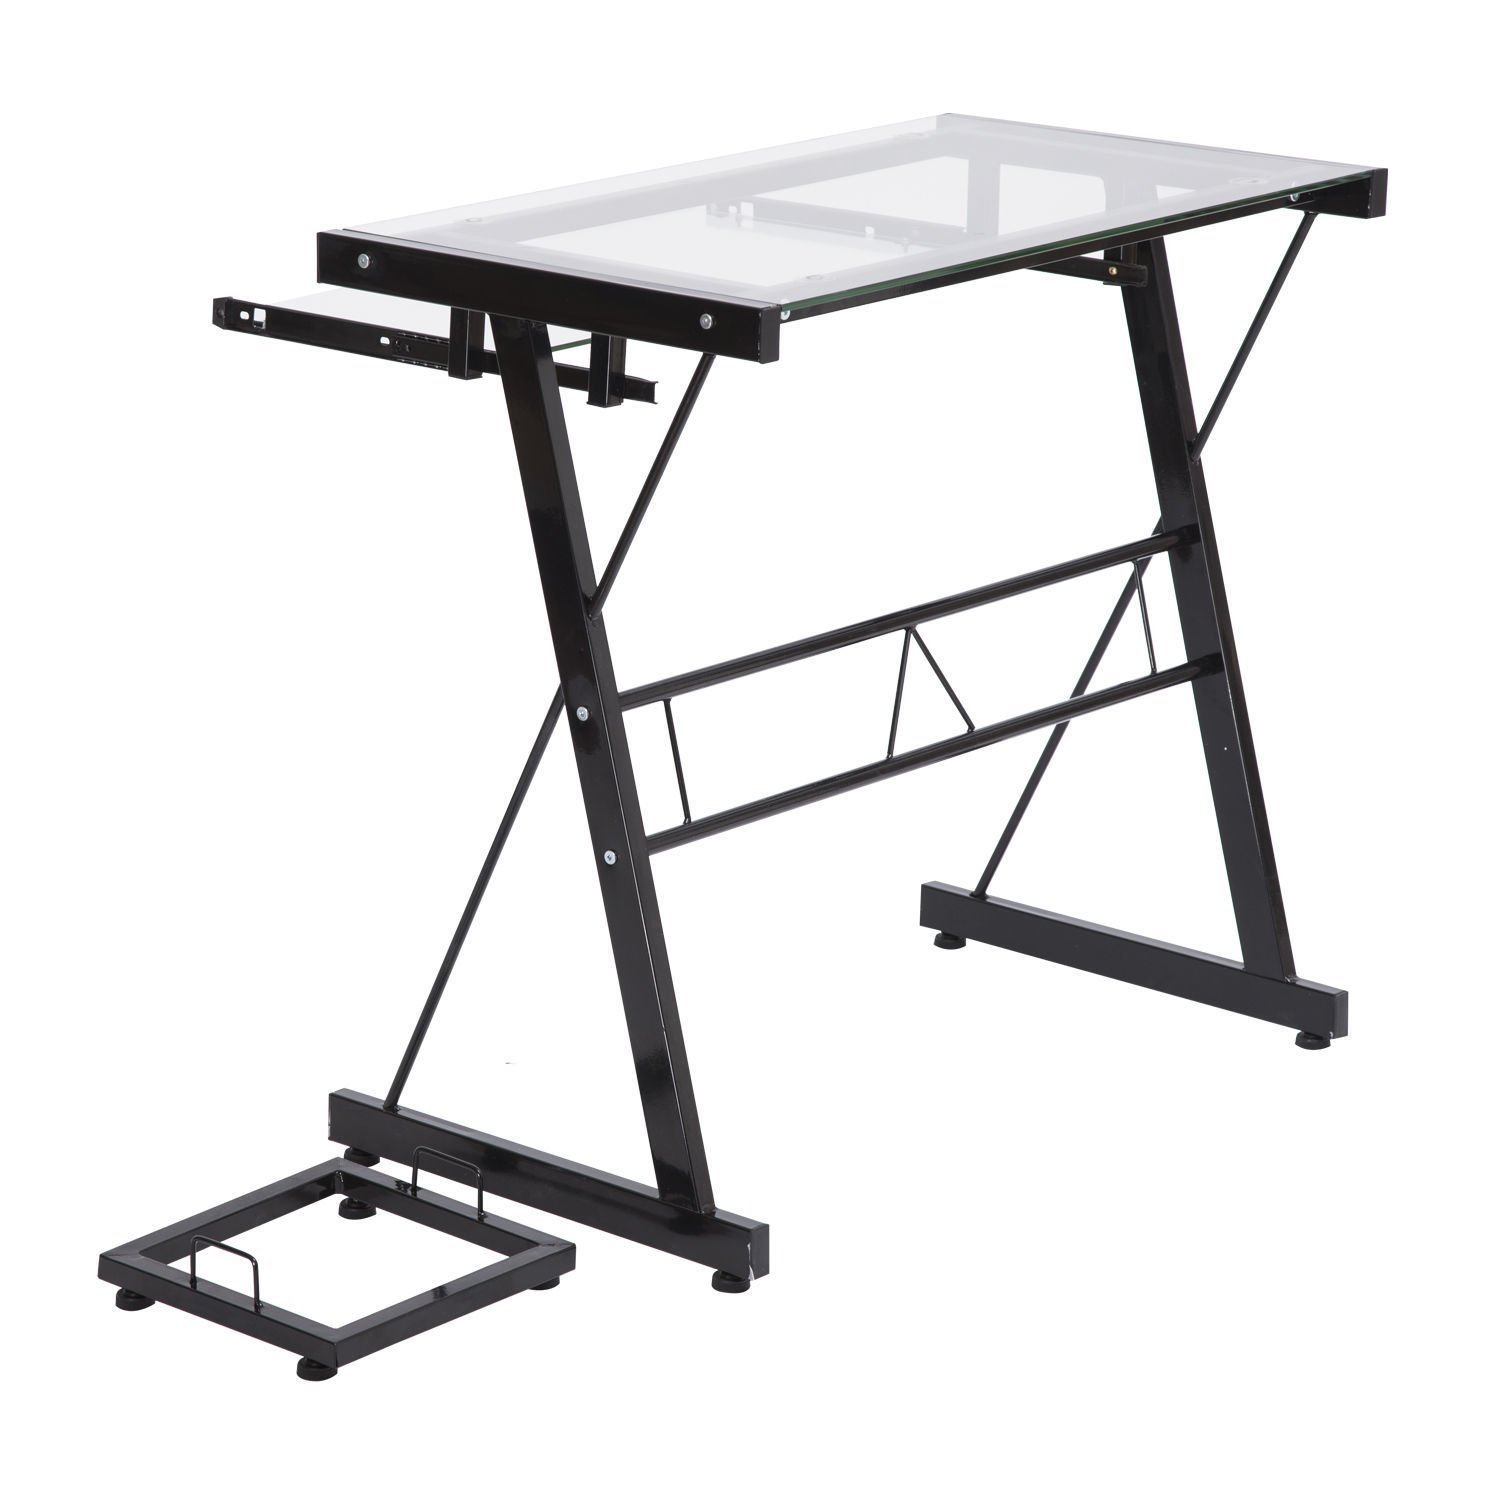 Computer Table Laptop Desk PC Stand Glass Top w/Keyboard Tray Home Office Workstation With Ebook